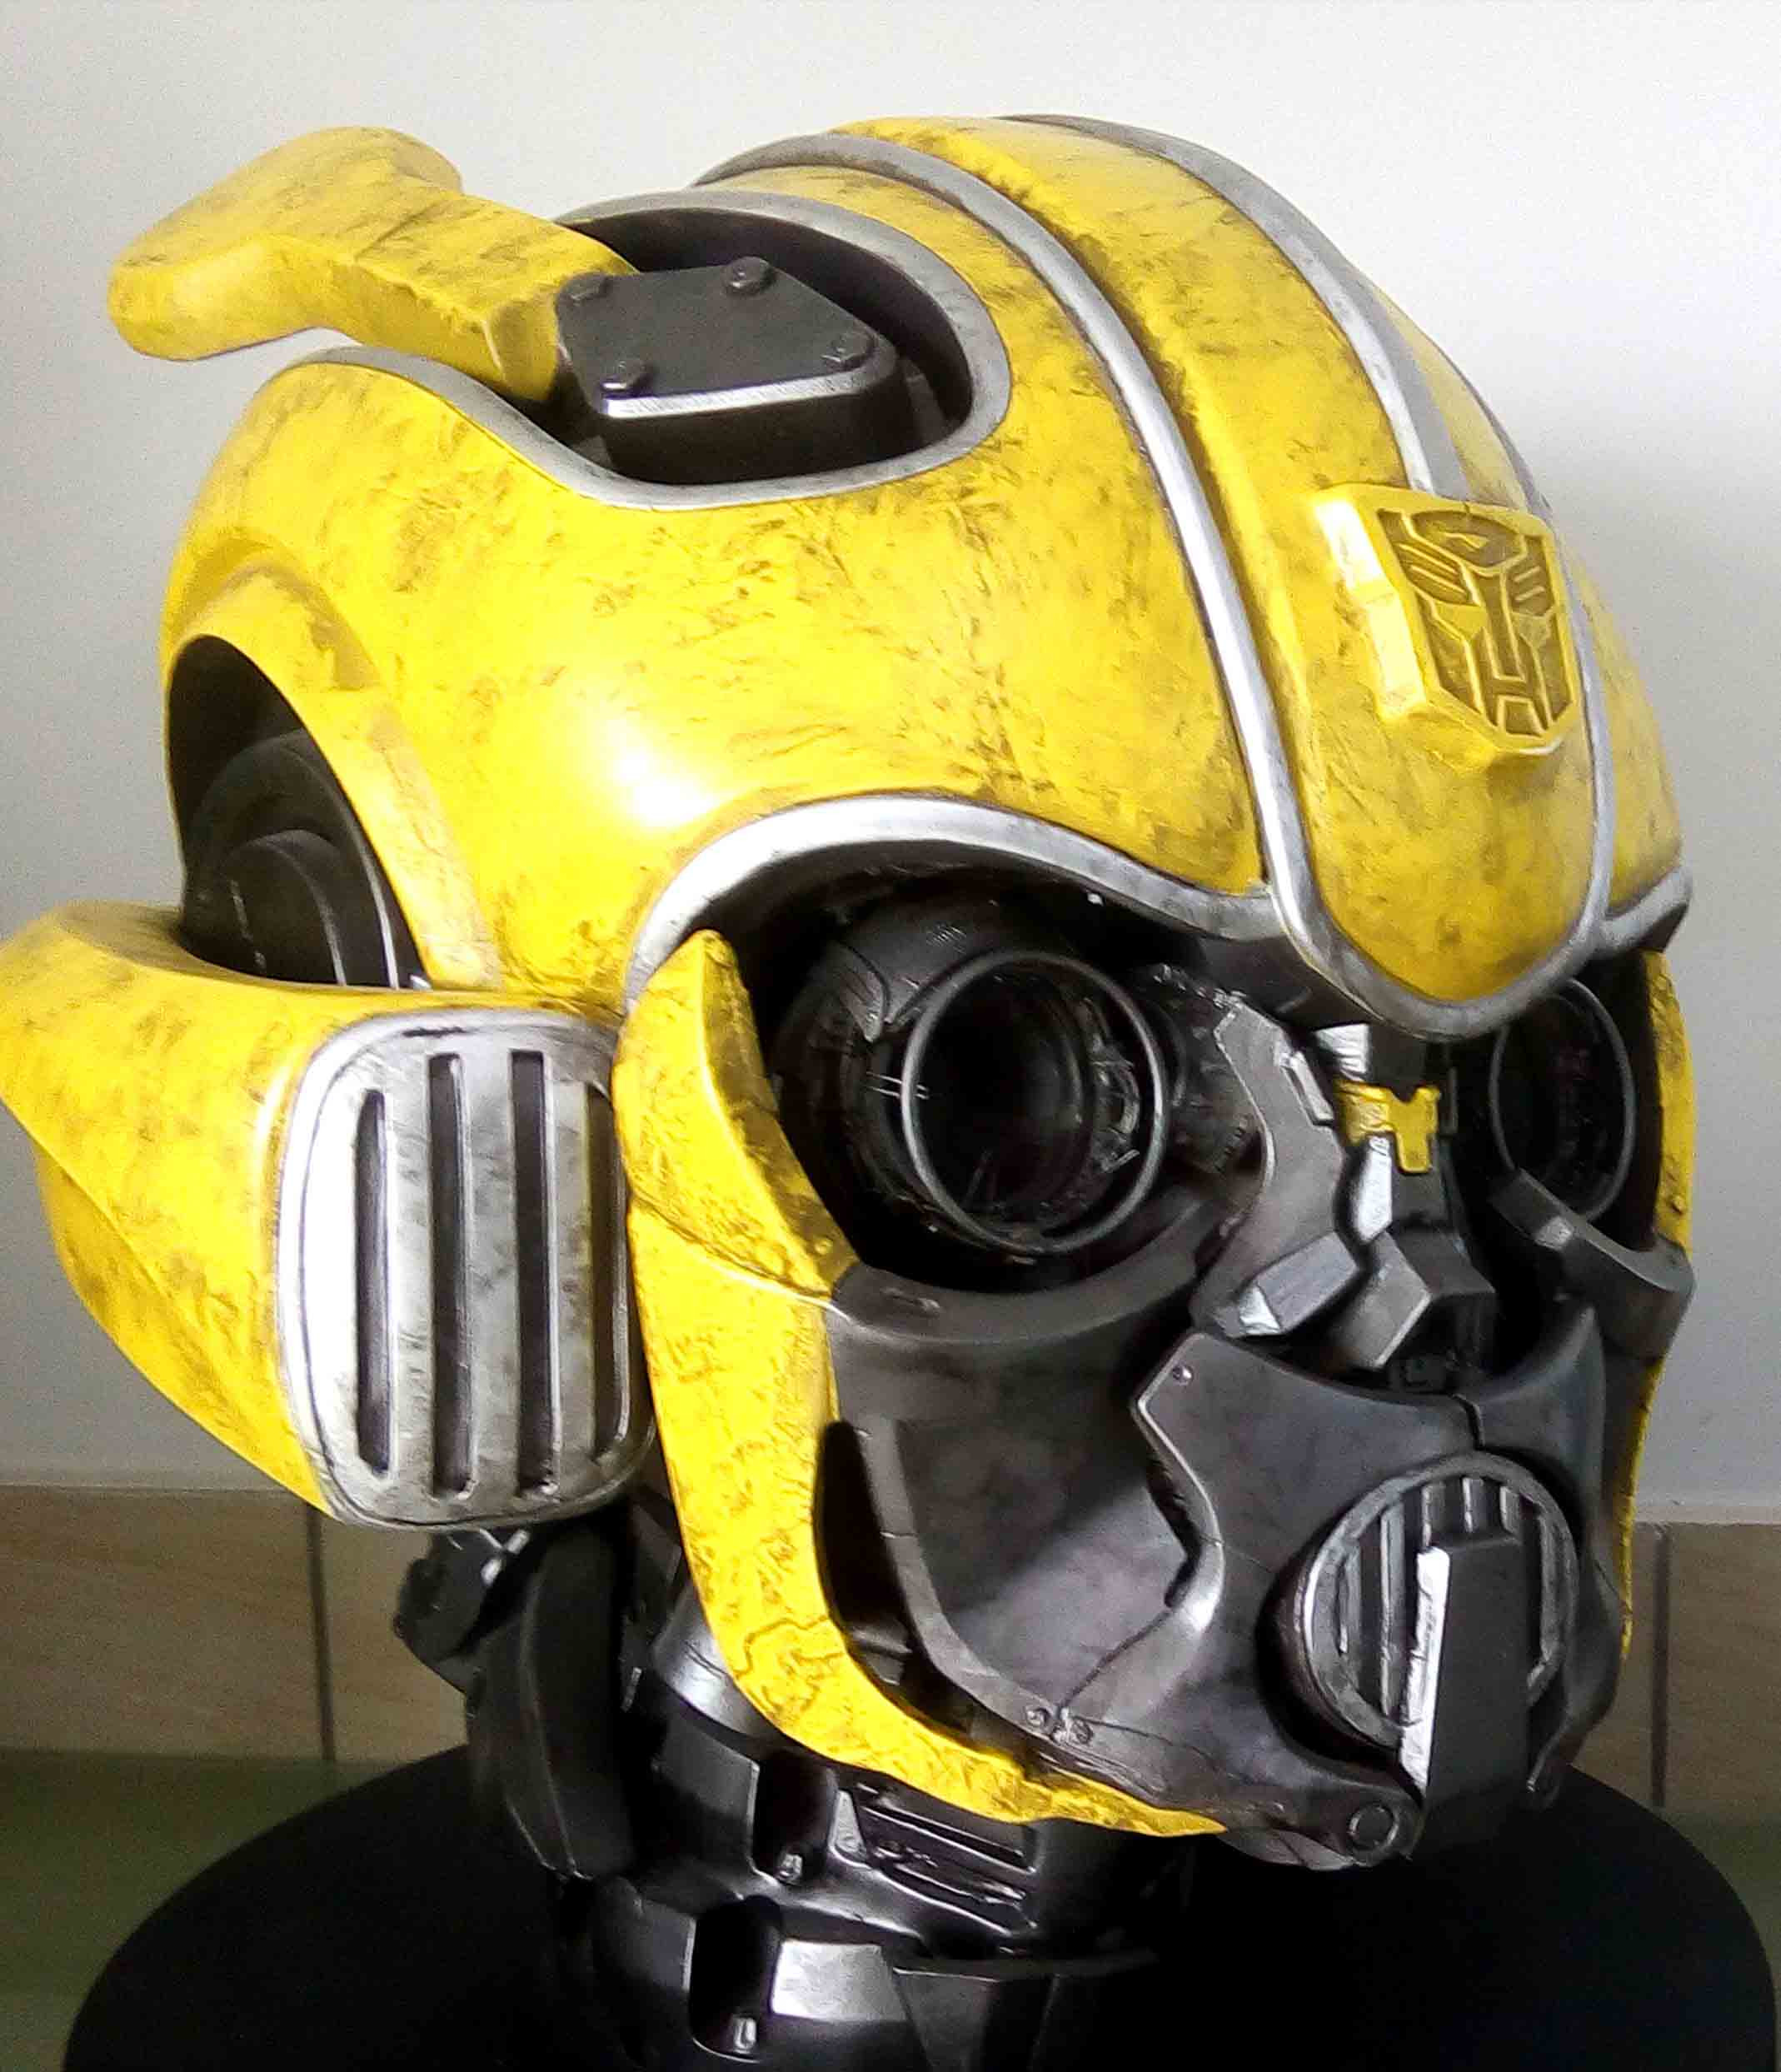 Bumblebee-Paramount Pictures-Designed by Yacine BRINIS-005-3D Printed an painted